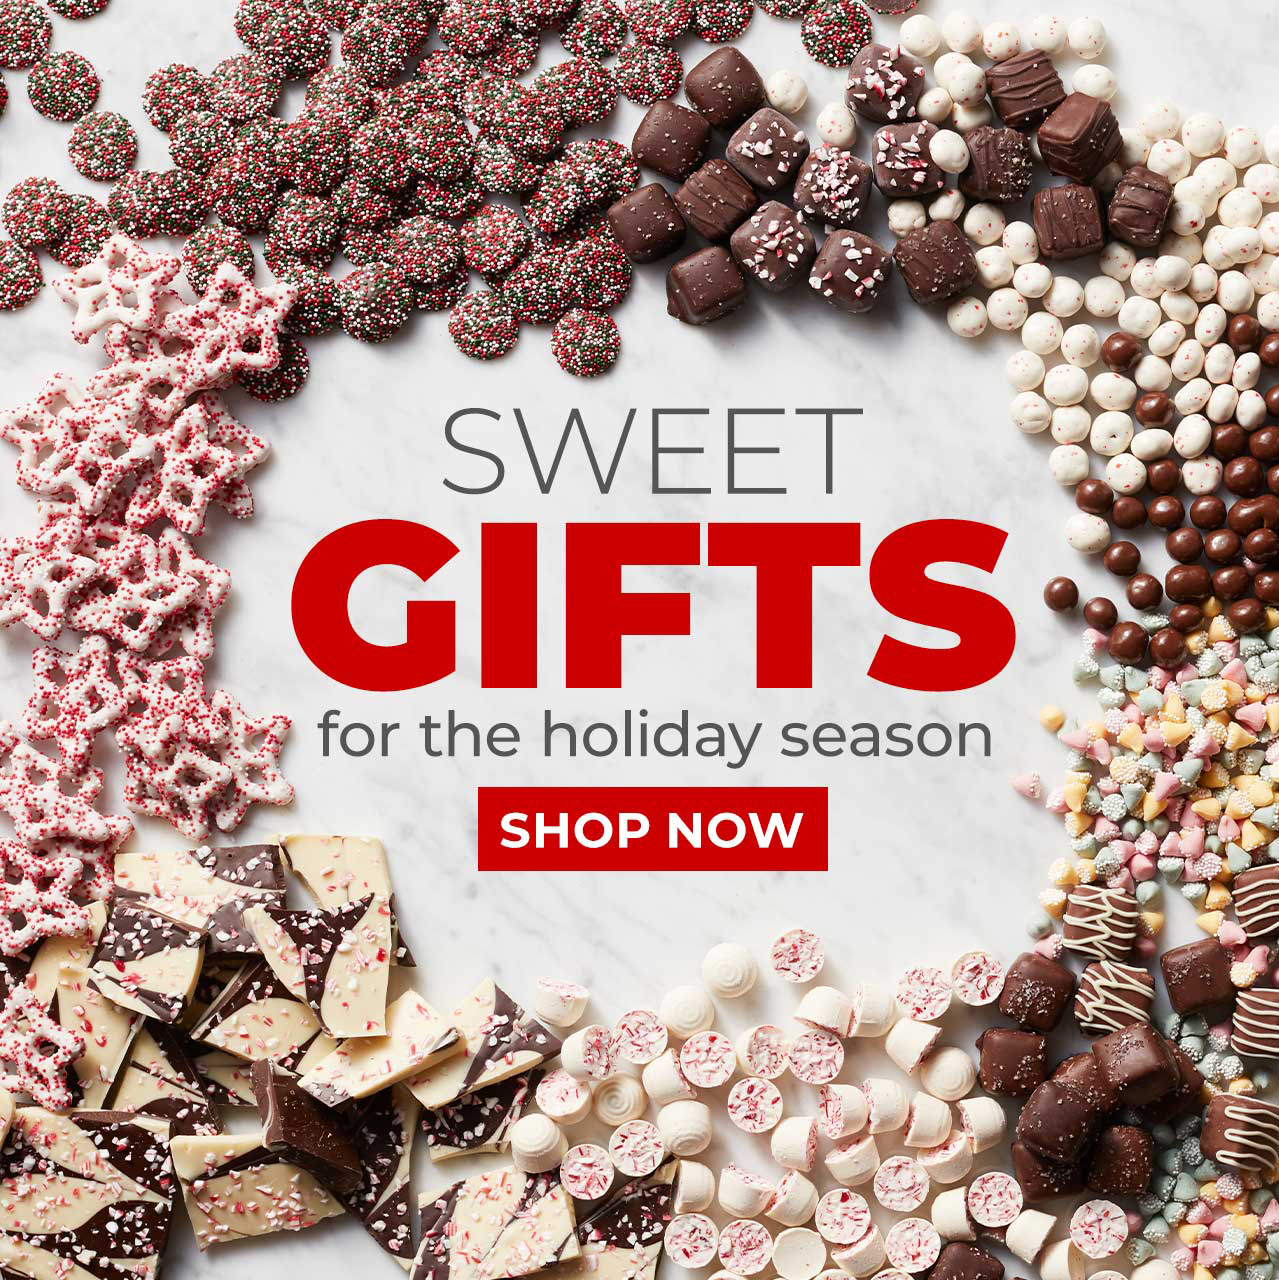 Shop sweet gifts